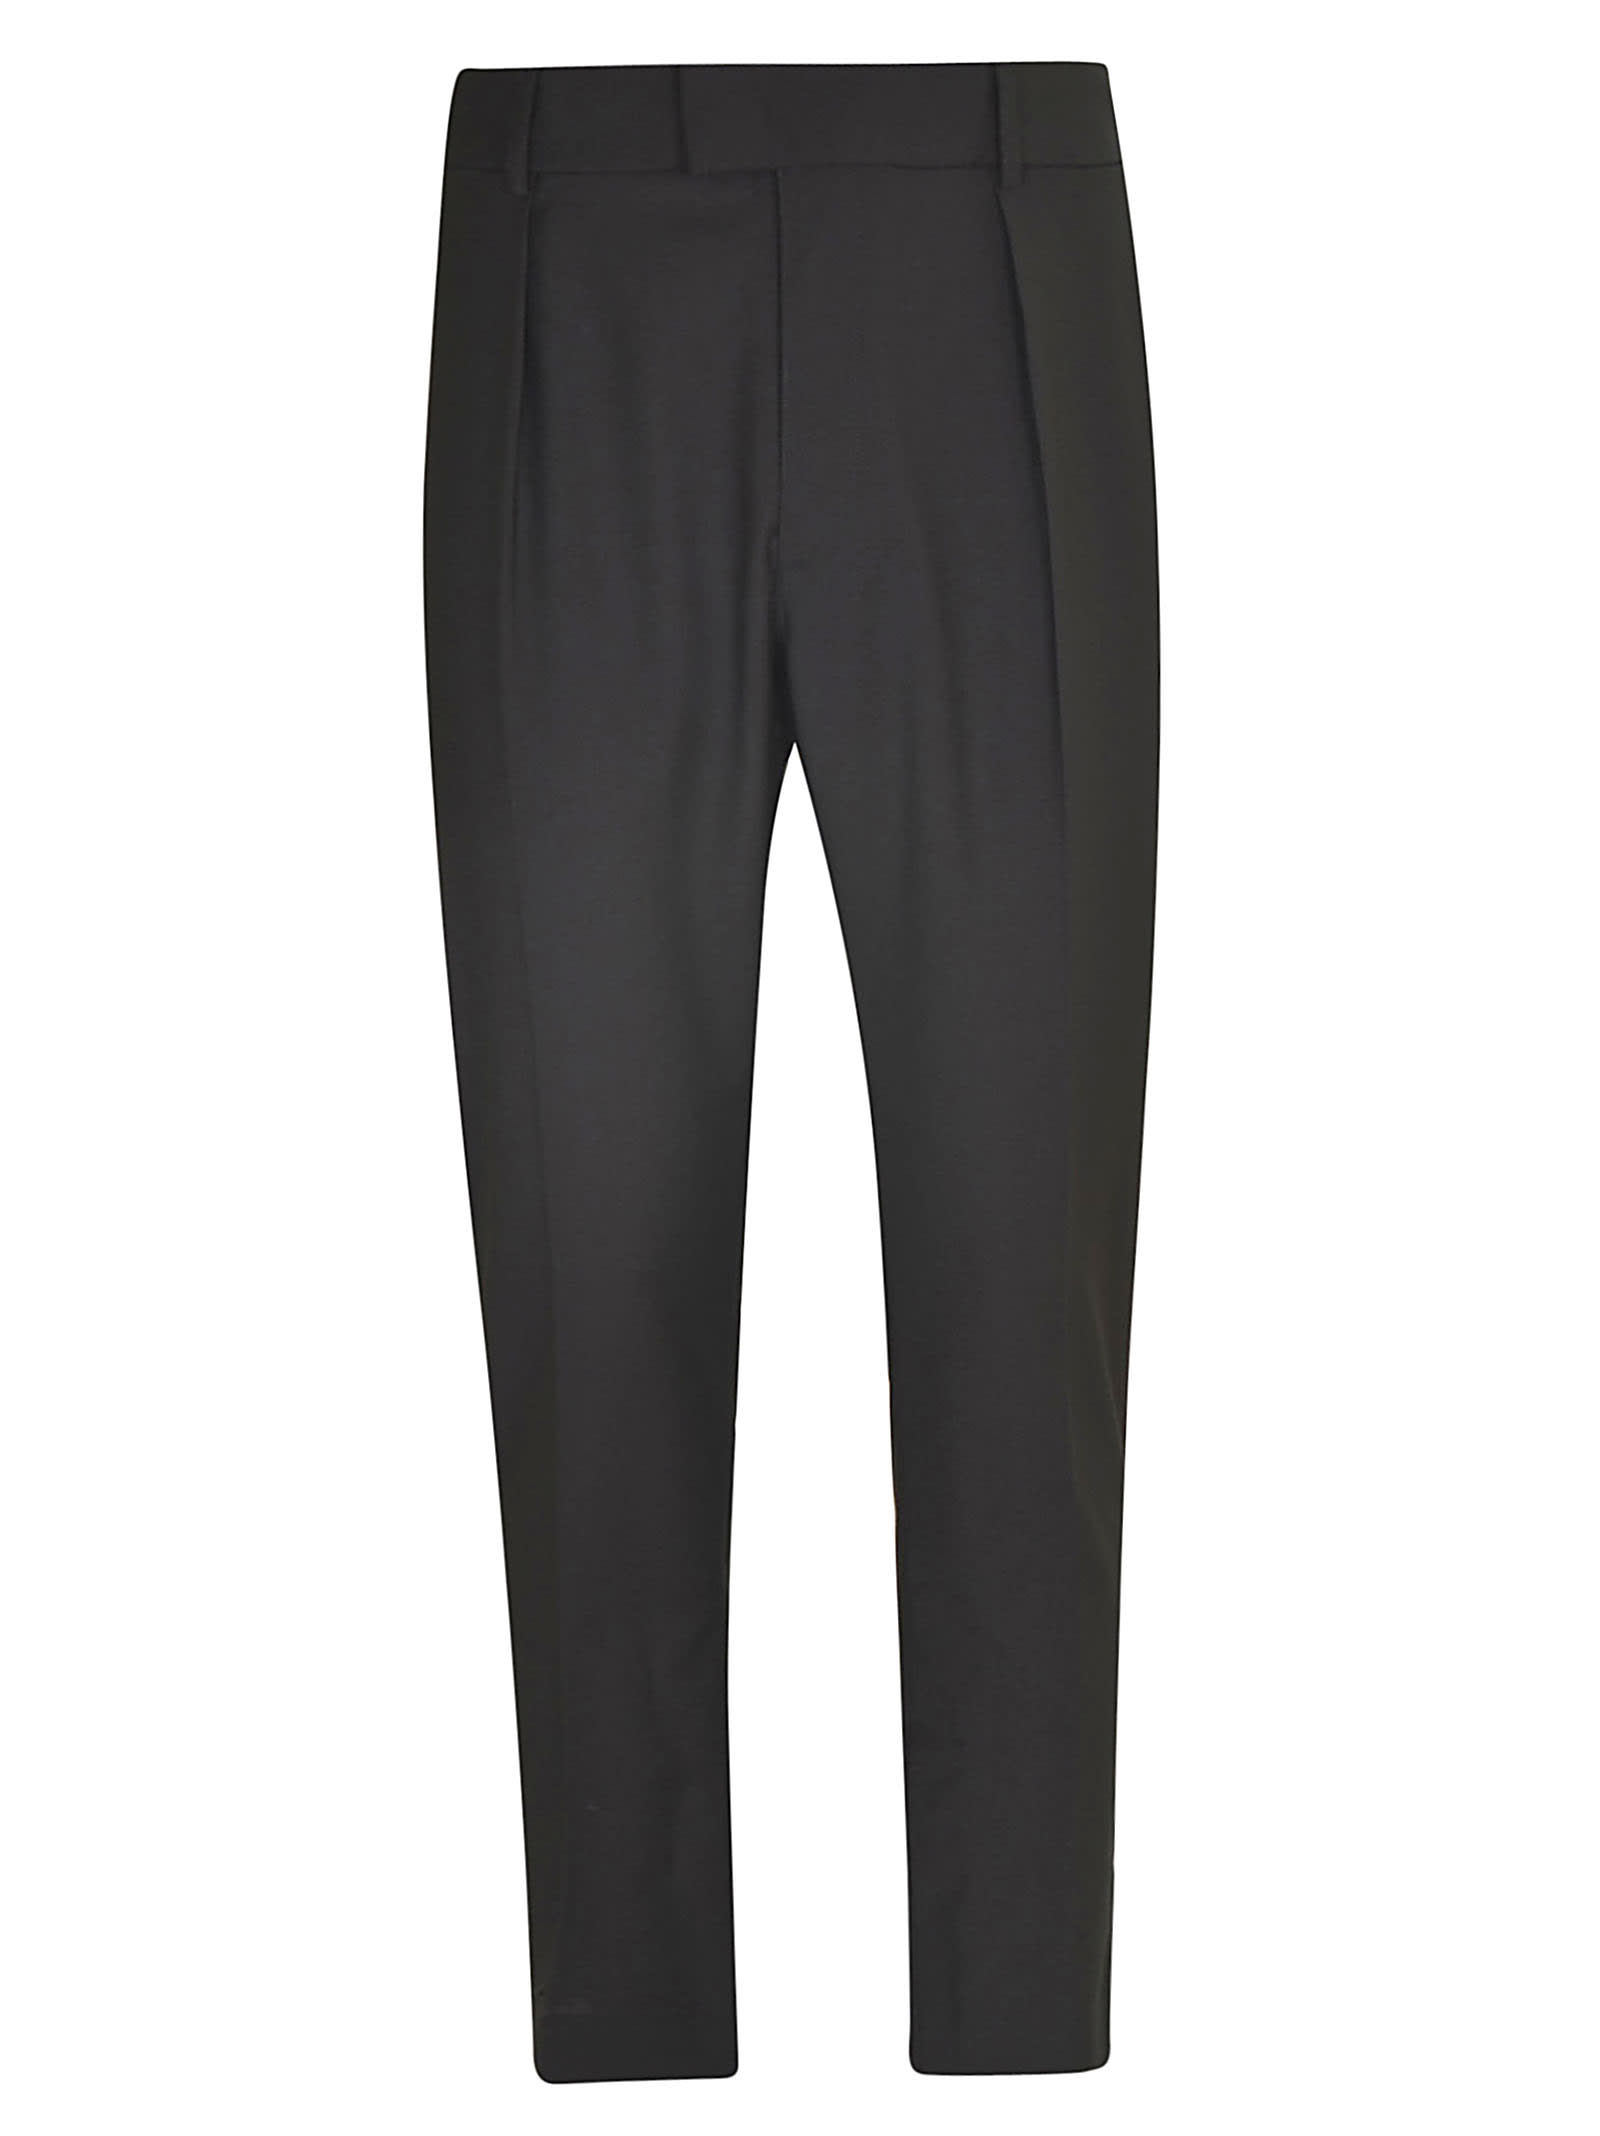 Les Hommes Double Waisted Casual Trousers